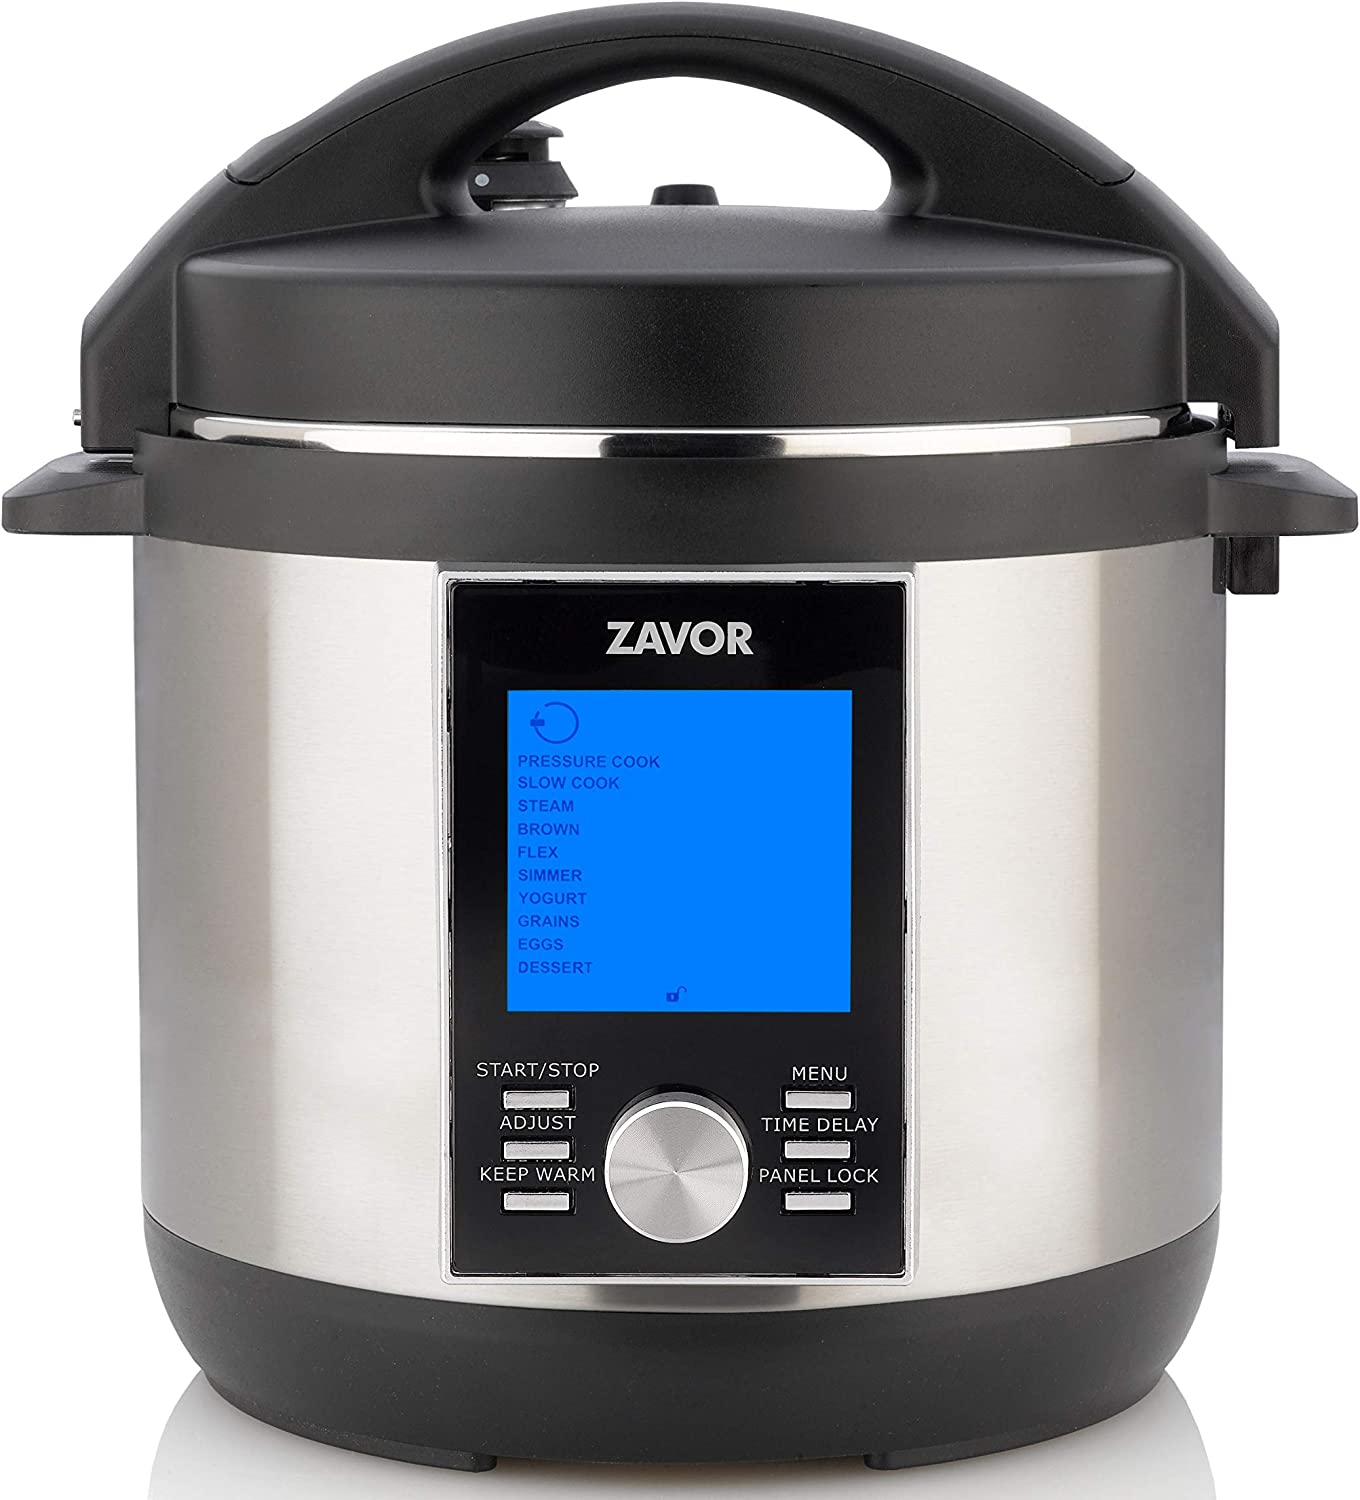 Zavor LUX LCD 4 Quart Programmable Electric Multi-Cooker: Pressure Cooker, Slow Cooker, Rice Cooker, Yogurt Maker, Steamer and more - Stainless Steel (ZSELL01)